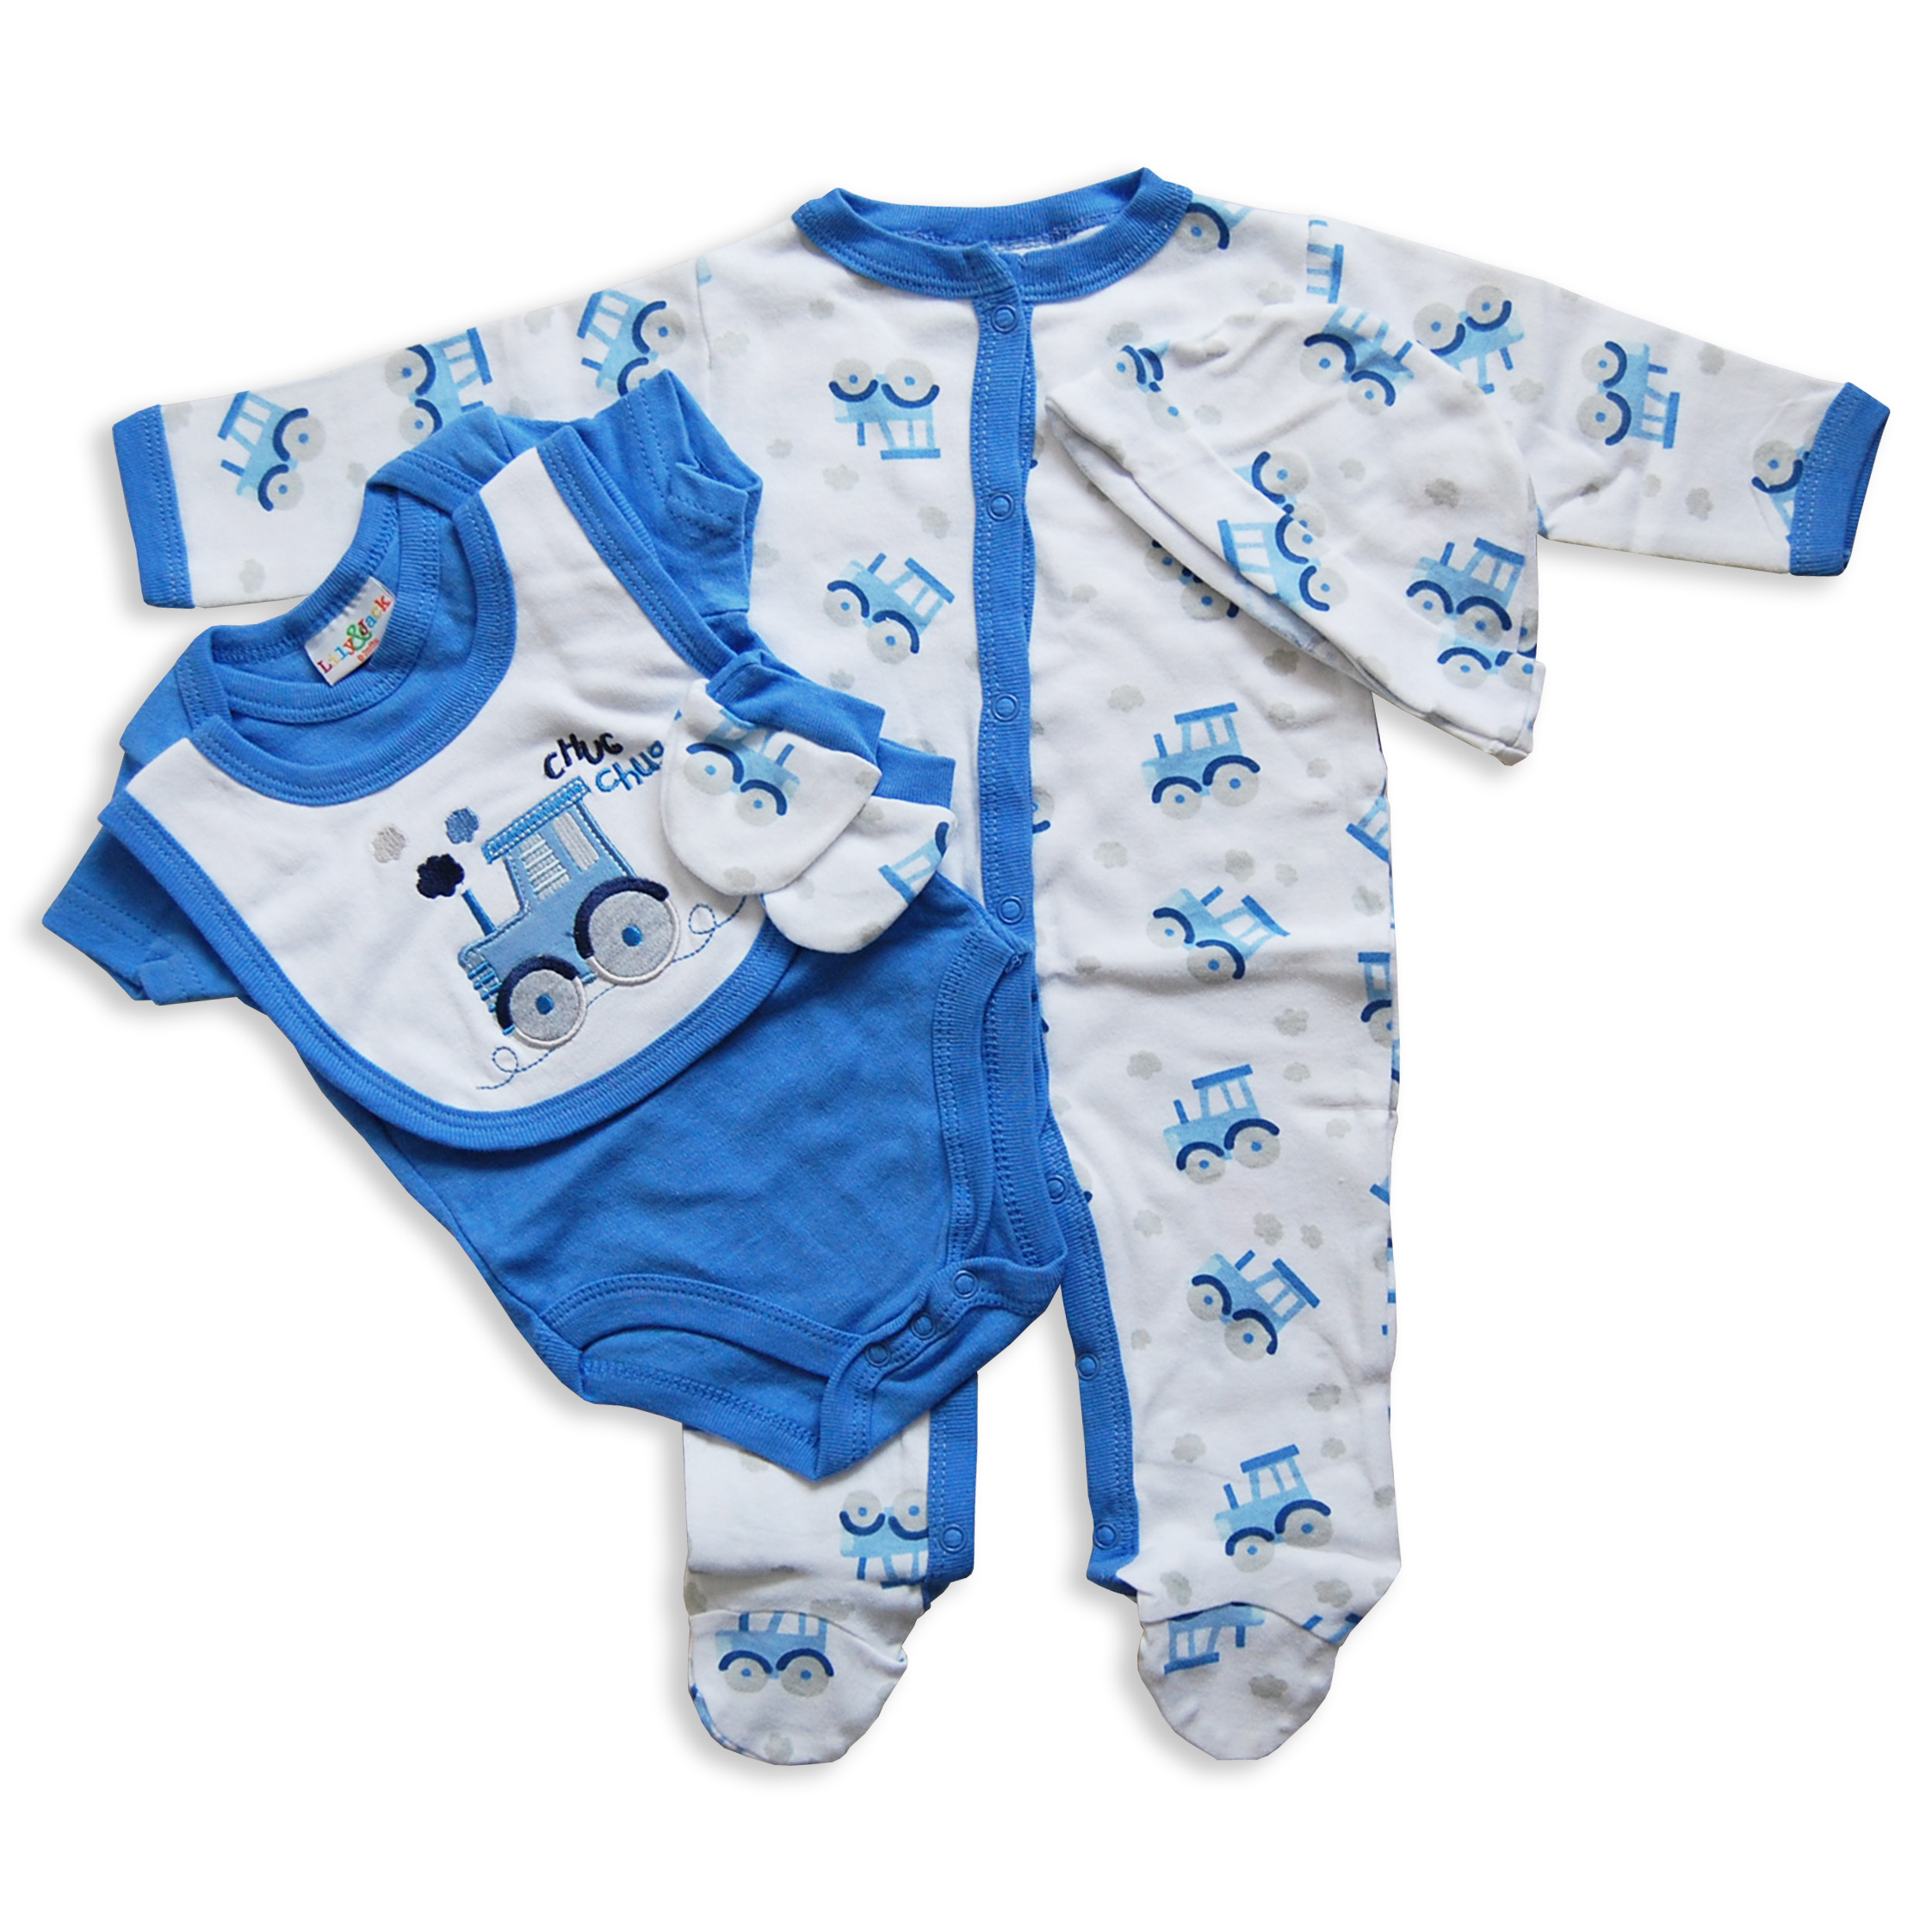 Find great deals on Baby Clothing Sets at Kohl's today! Sponsored Links Outside companies pay to advertise via these links when specific phrases and words are searched.